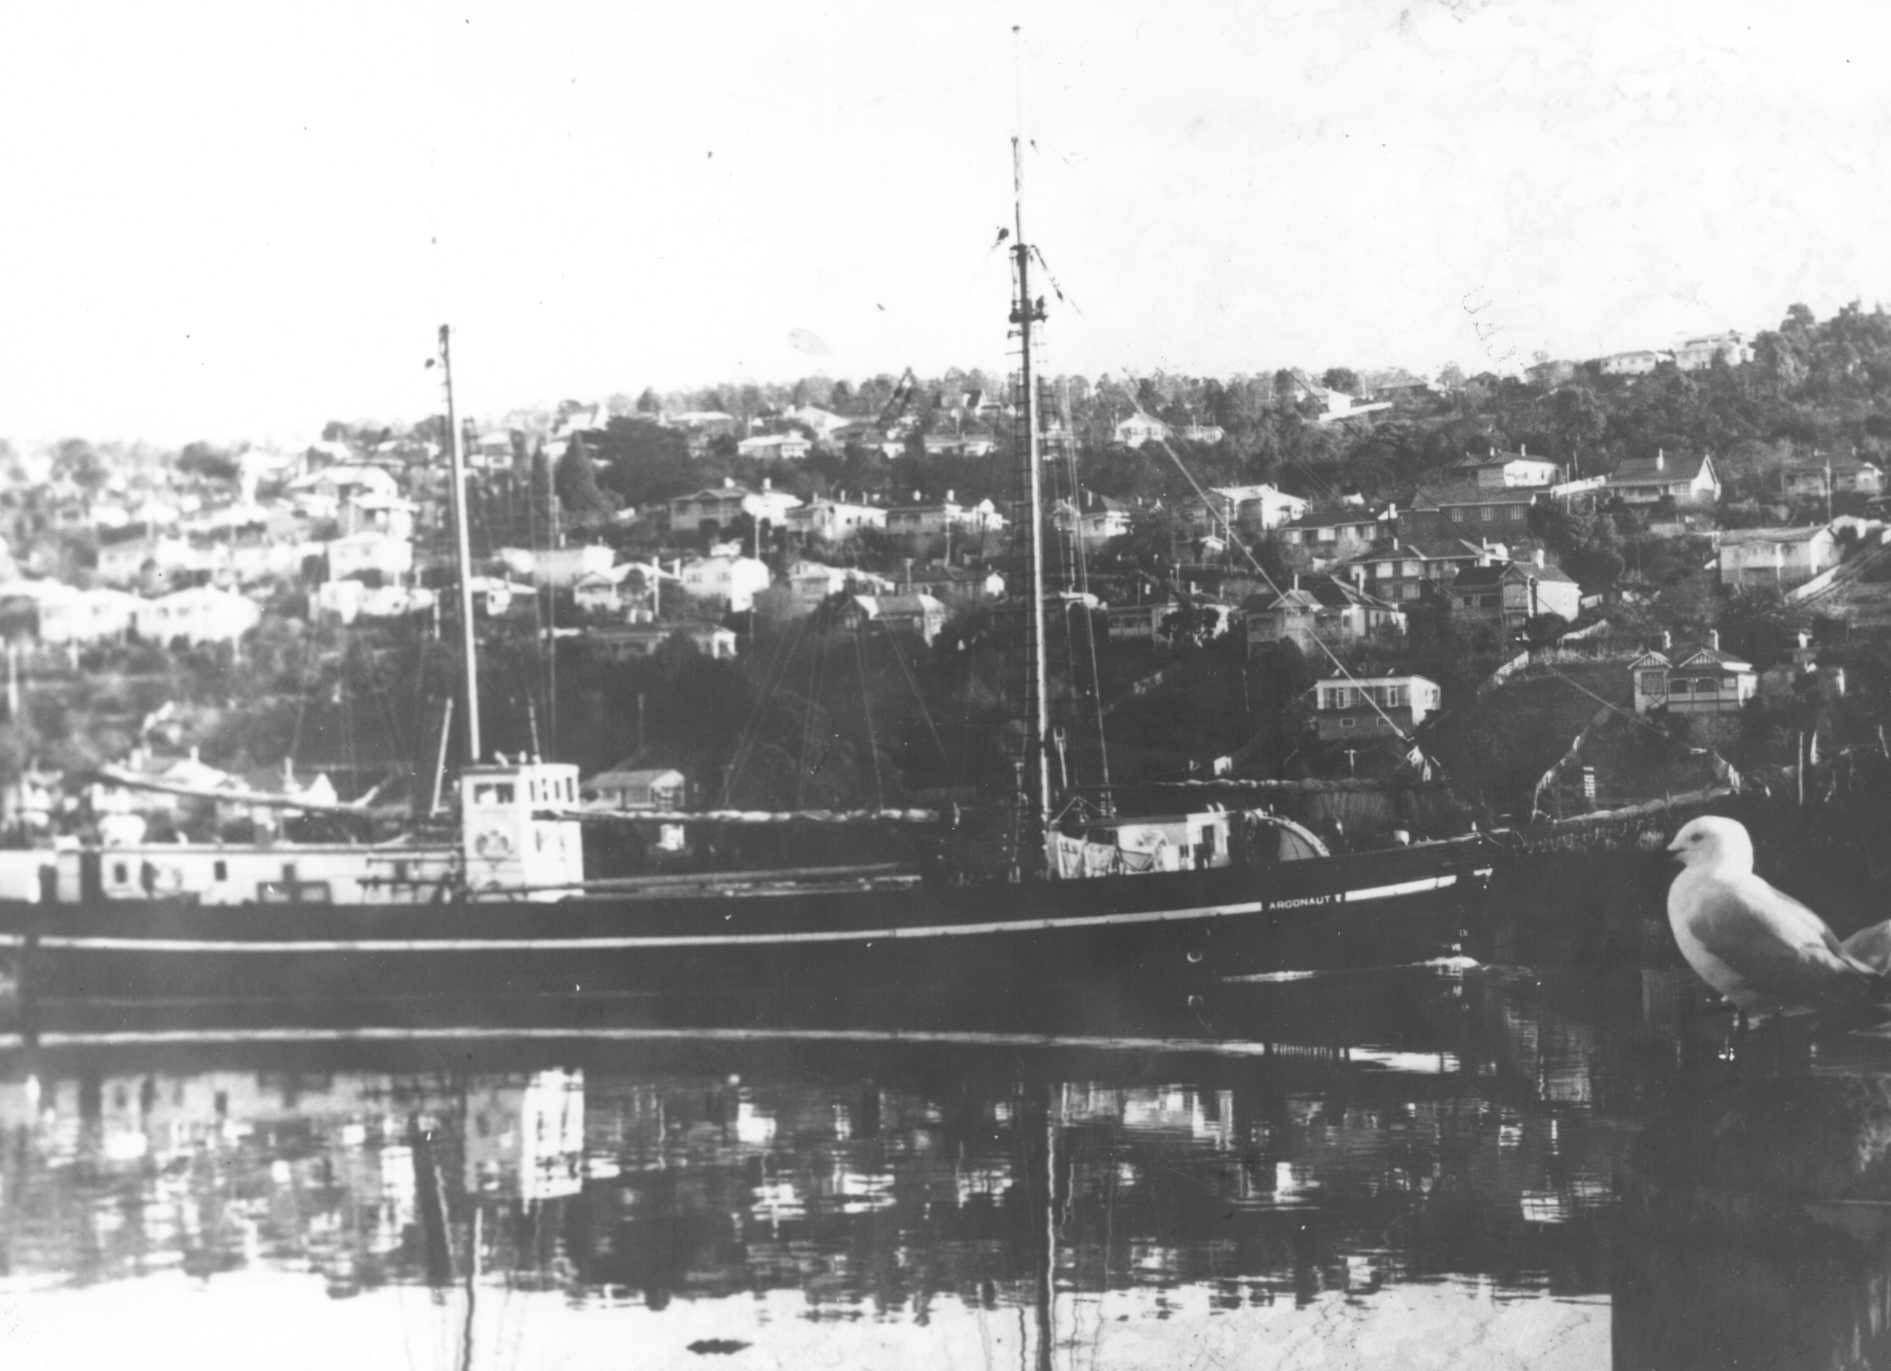 In this image vessel is moored at a harbour, showing a side on view of vessel.